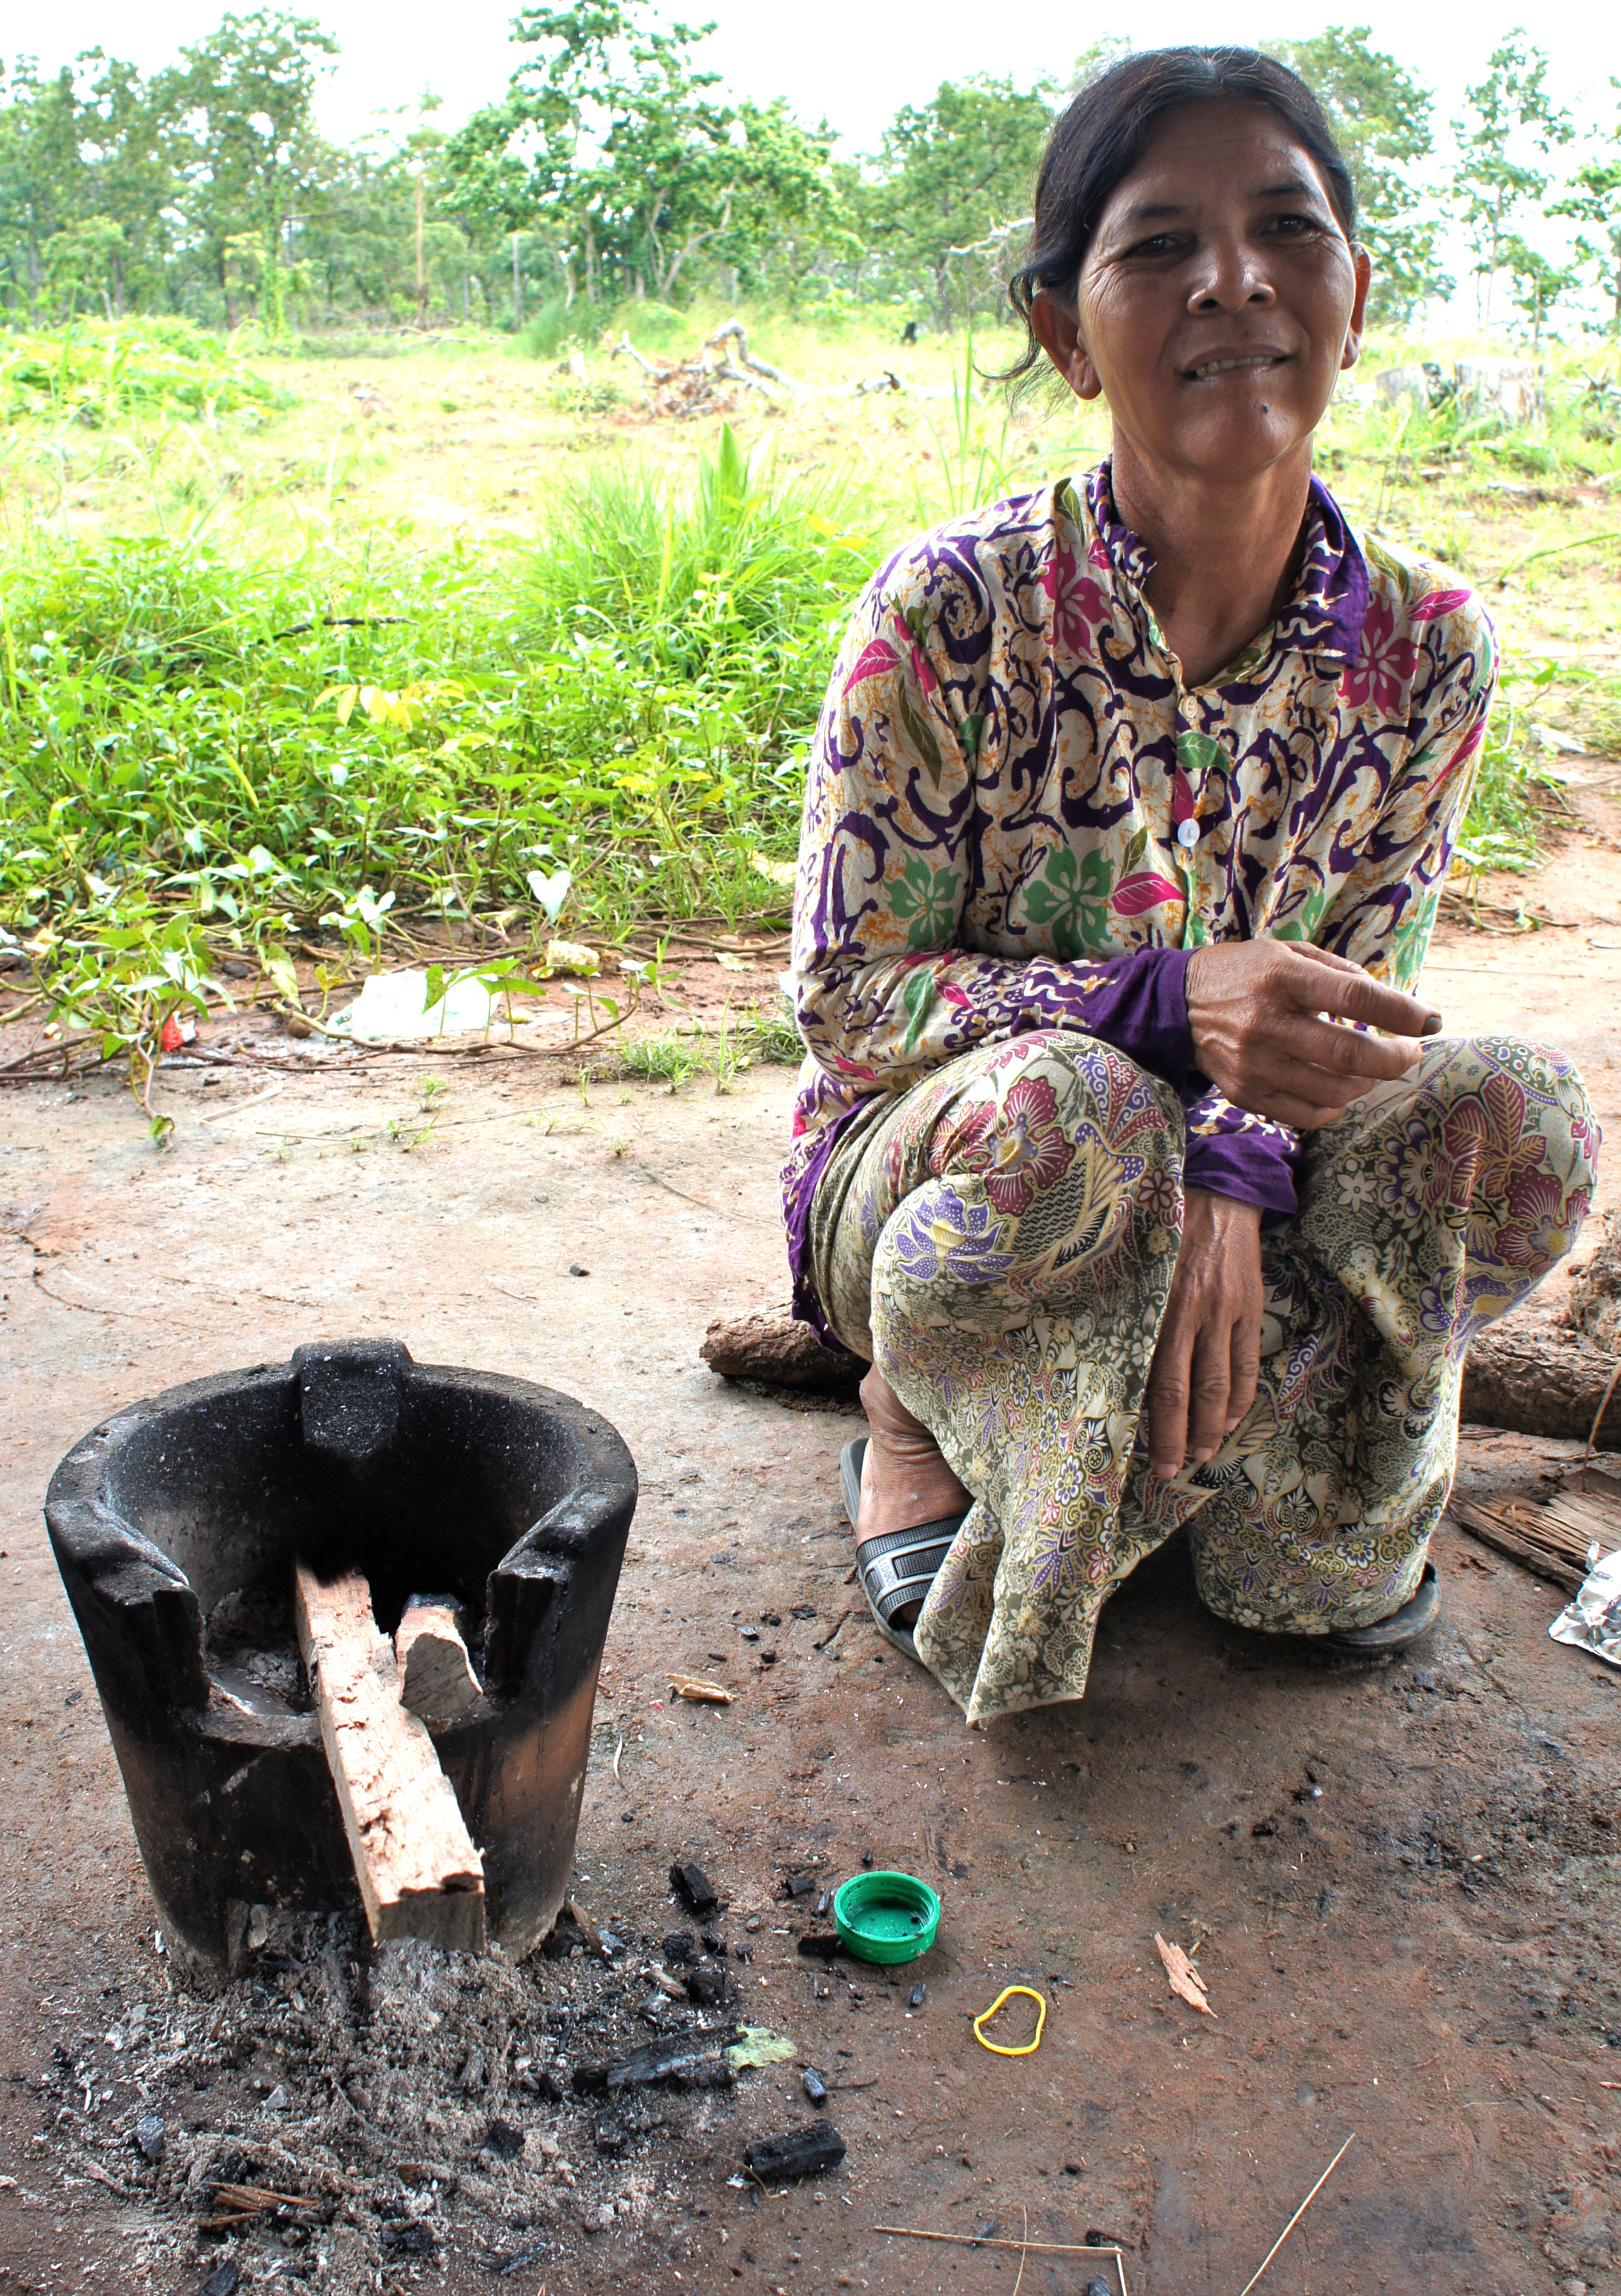 Cambodian lady with cookstove